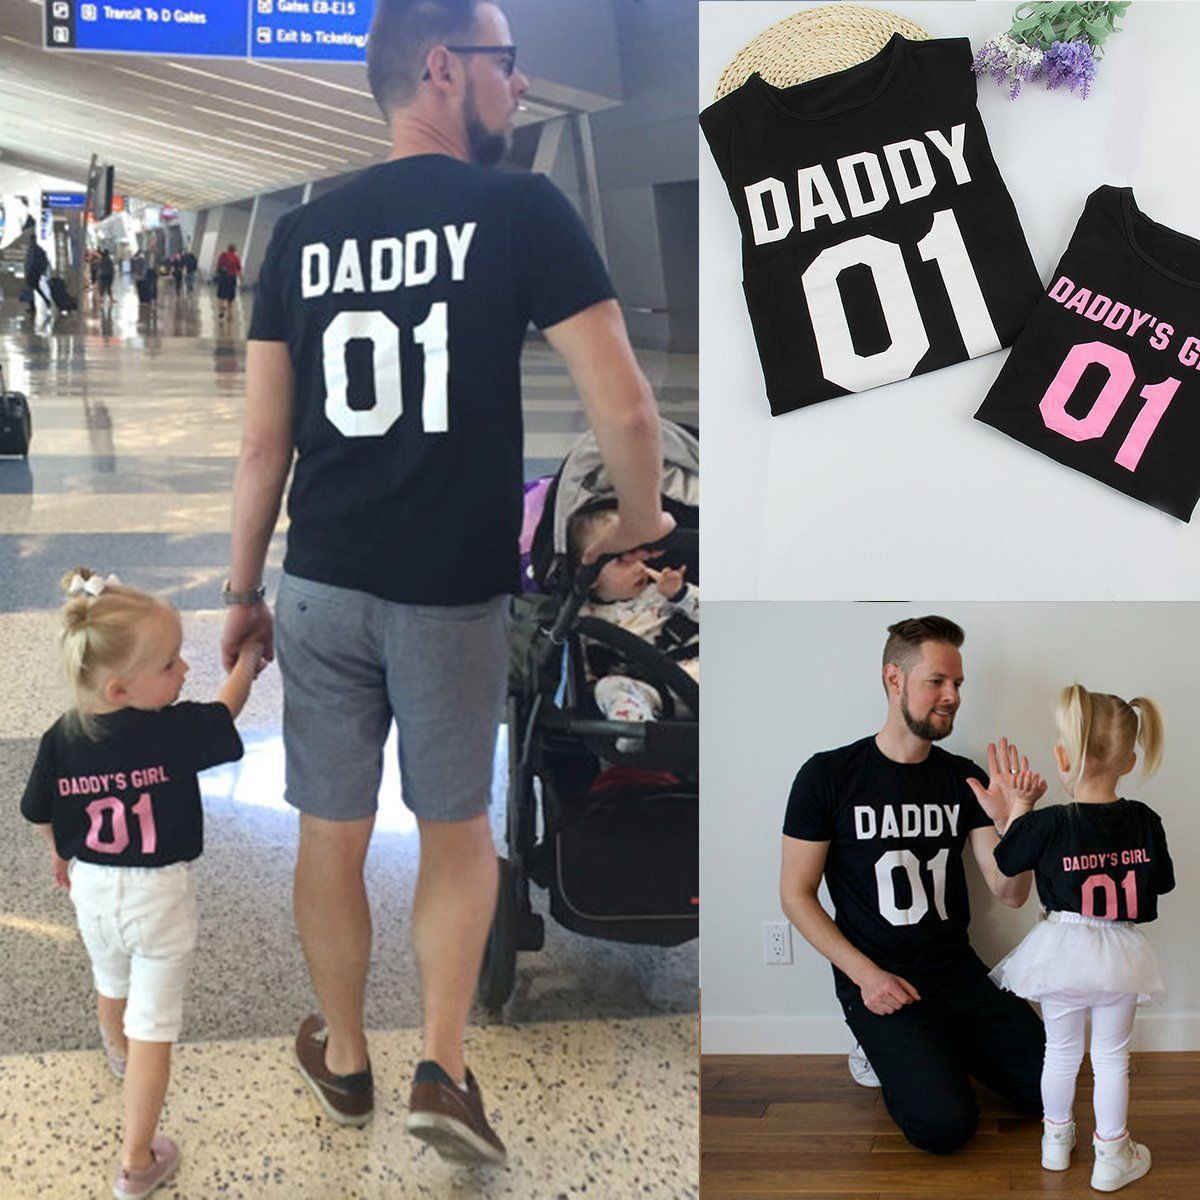 82b228f14 Detail Feedback Questions about 2017 Family T Shirts DADDY & DADDY'S GIRL  Father & Daughter T shirt Tops Family Matching Tee Clothes on  Aliexpress.com ...